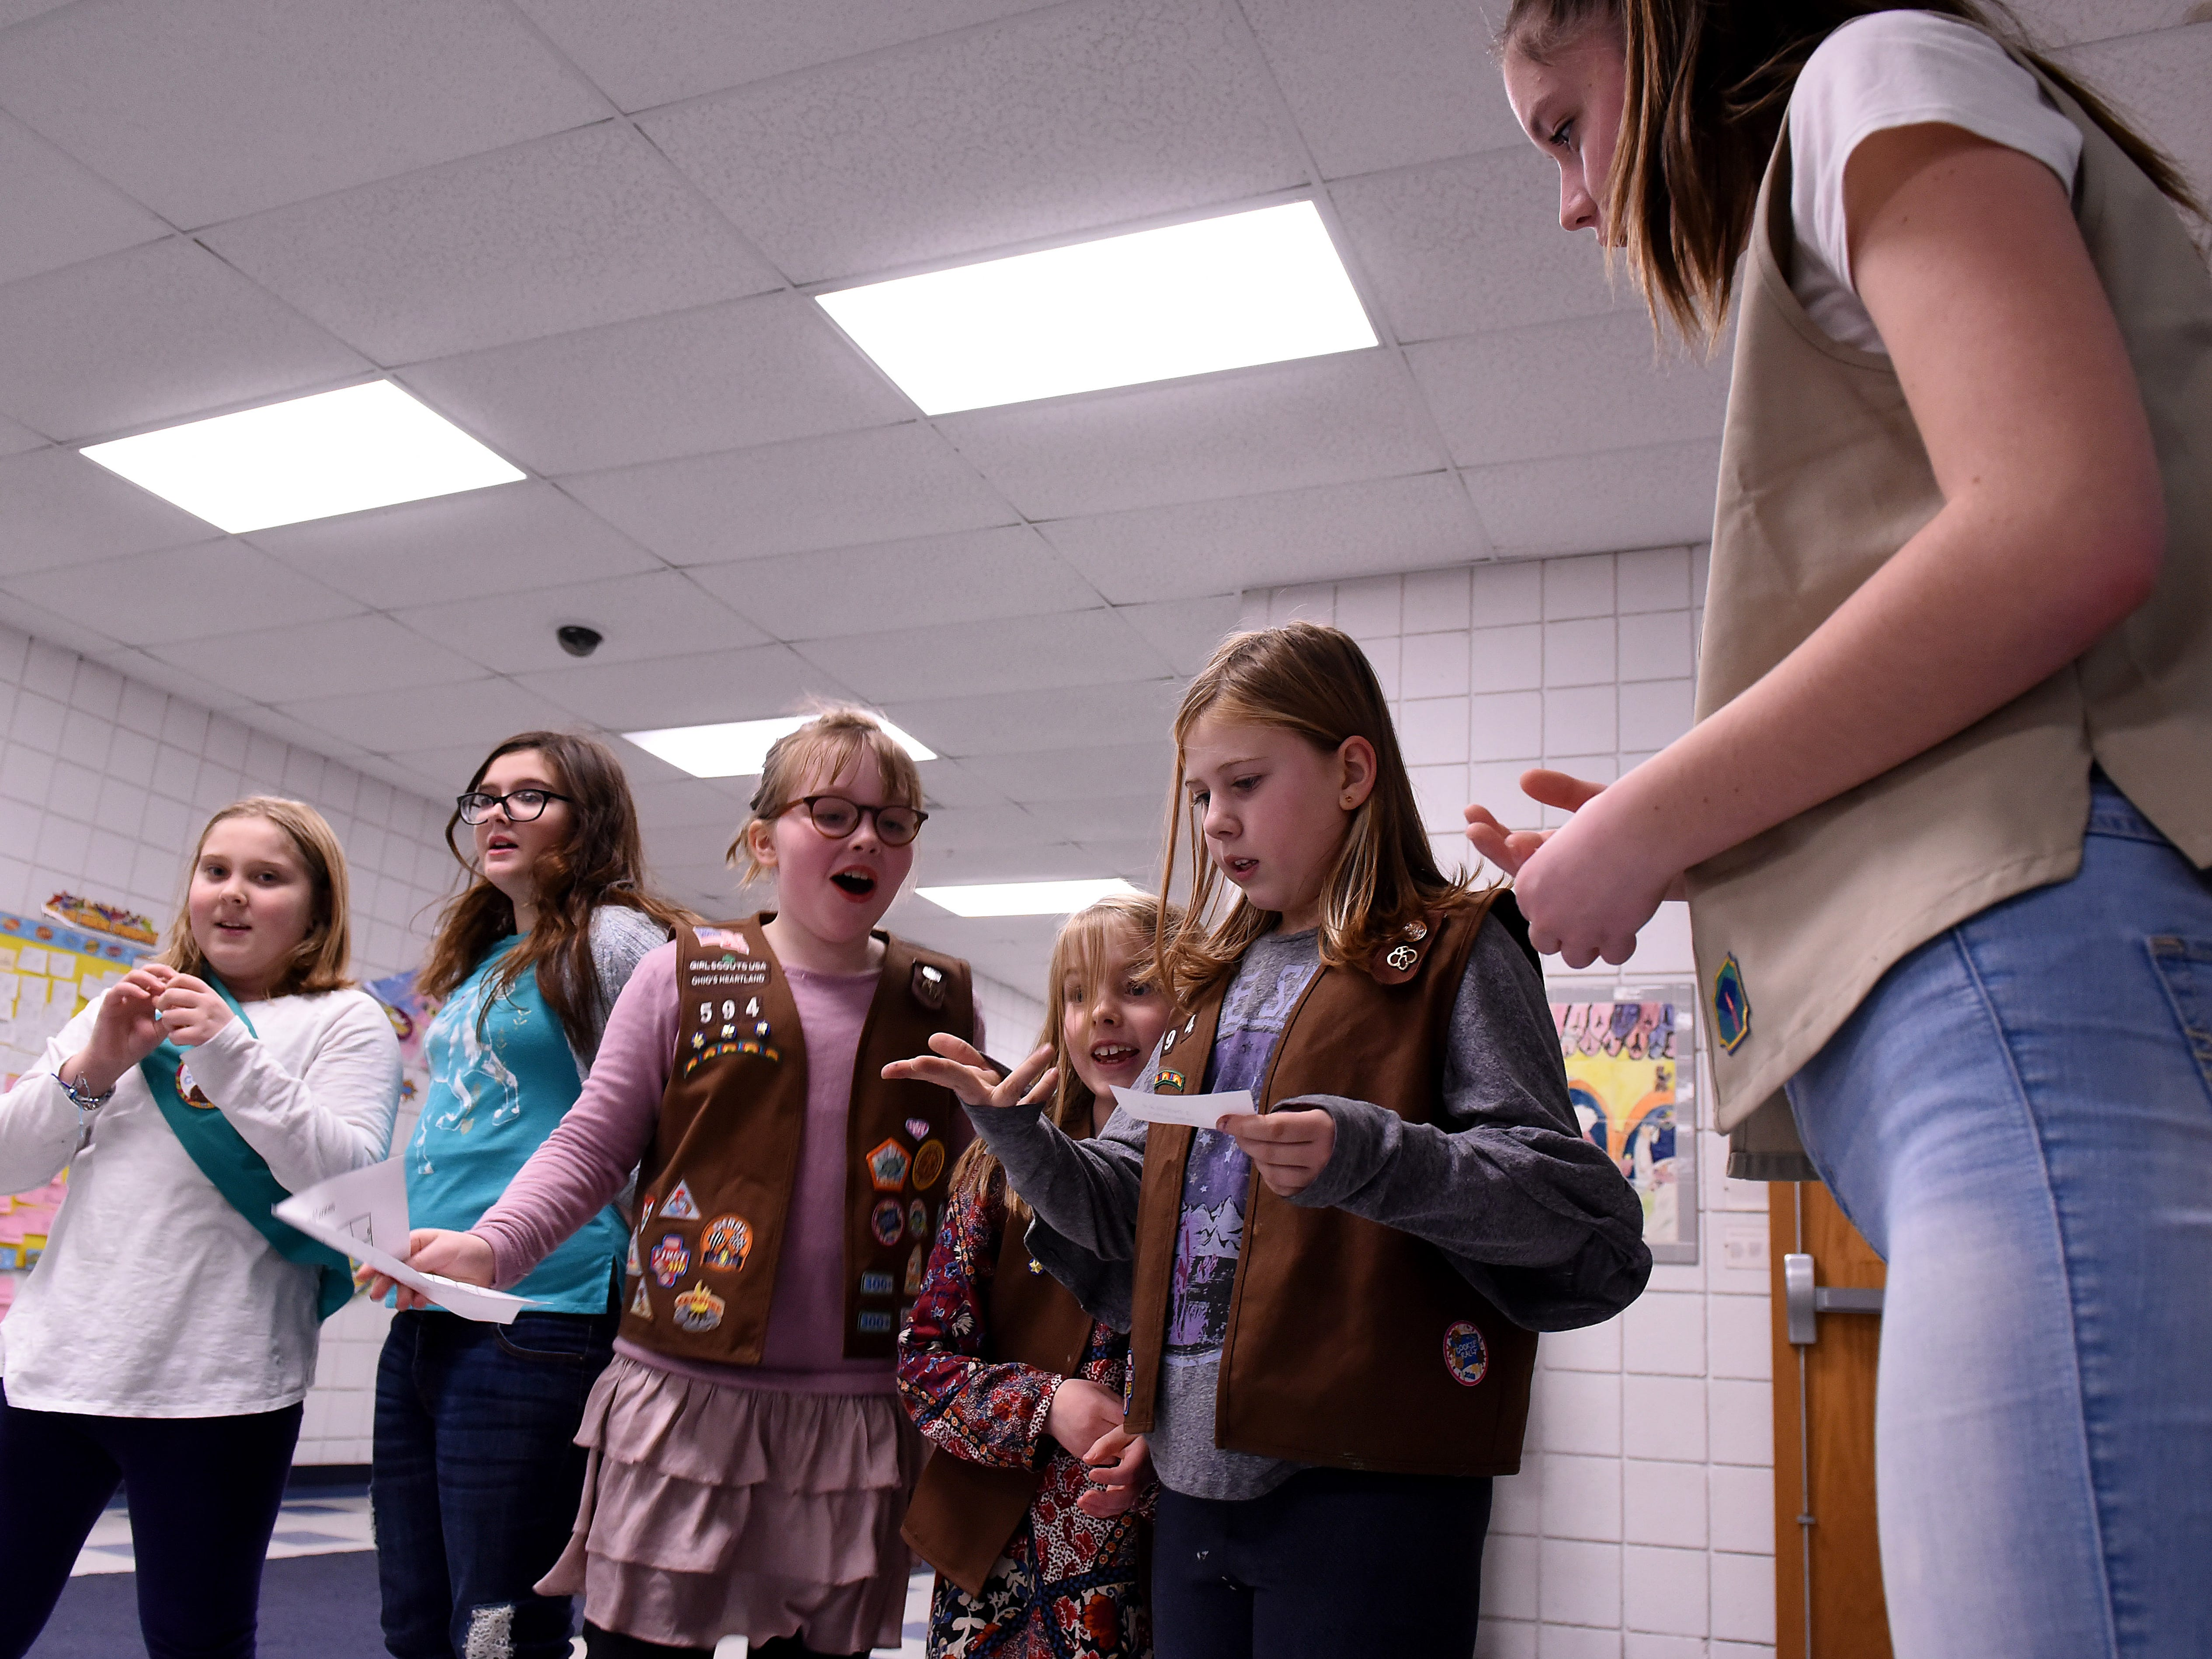 Junior Girl Scouts Elizabeth Lammbert and Scarlett Woltz compete against Brownies Ande Potaracke, Lola Phennicie, and Charlie Cholewa in a cookie cost math game as Ambassador Scout Maggie Reinhardt checks their math during a cookie rally at Granville Elementary on Friday, Jan. 11, 2019. Scouts meet to sample cookies, practice making change and calculating cost, and other entrepreneur skills during the event to start the Girl Scout cookie season. Local scouts will be taking orders through January 27th and then will be selling at booths locally through March 24.